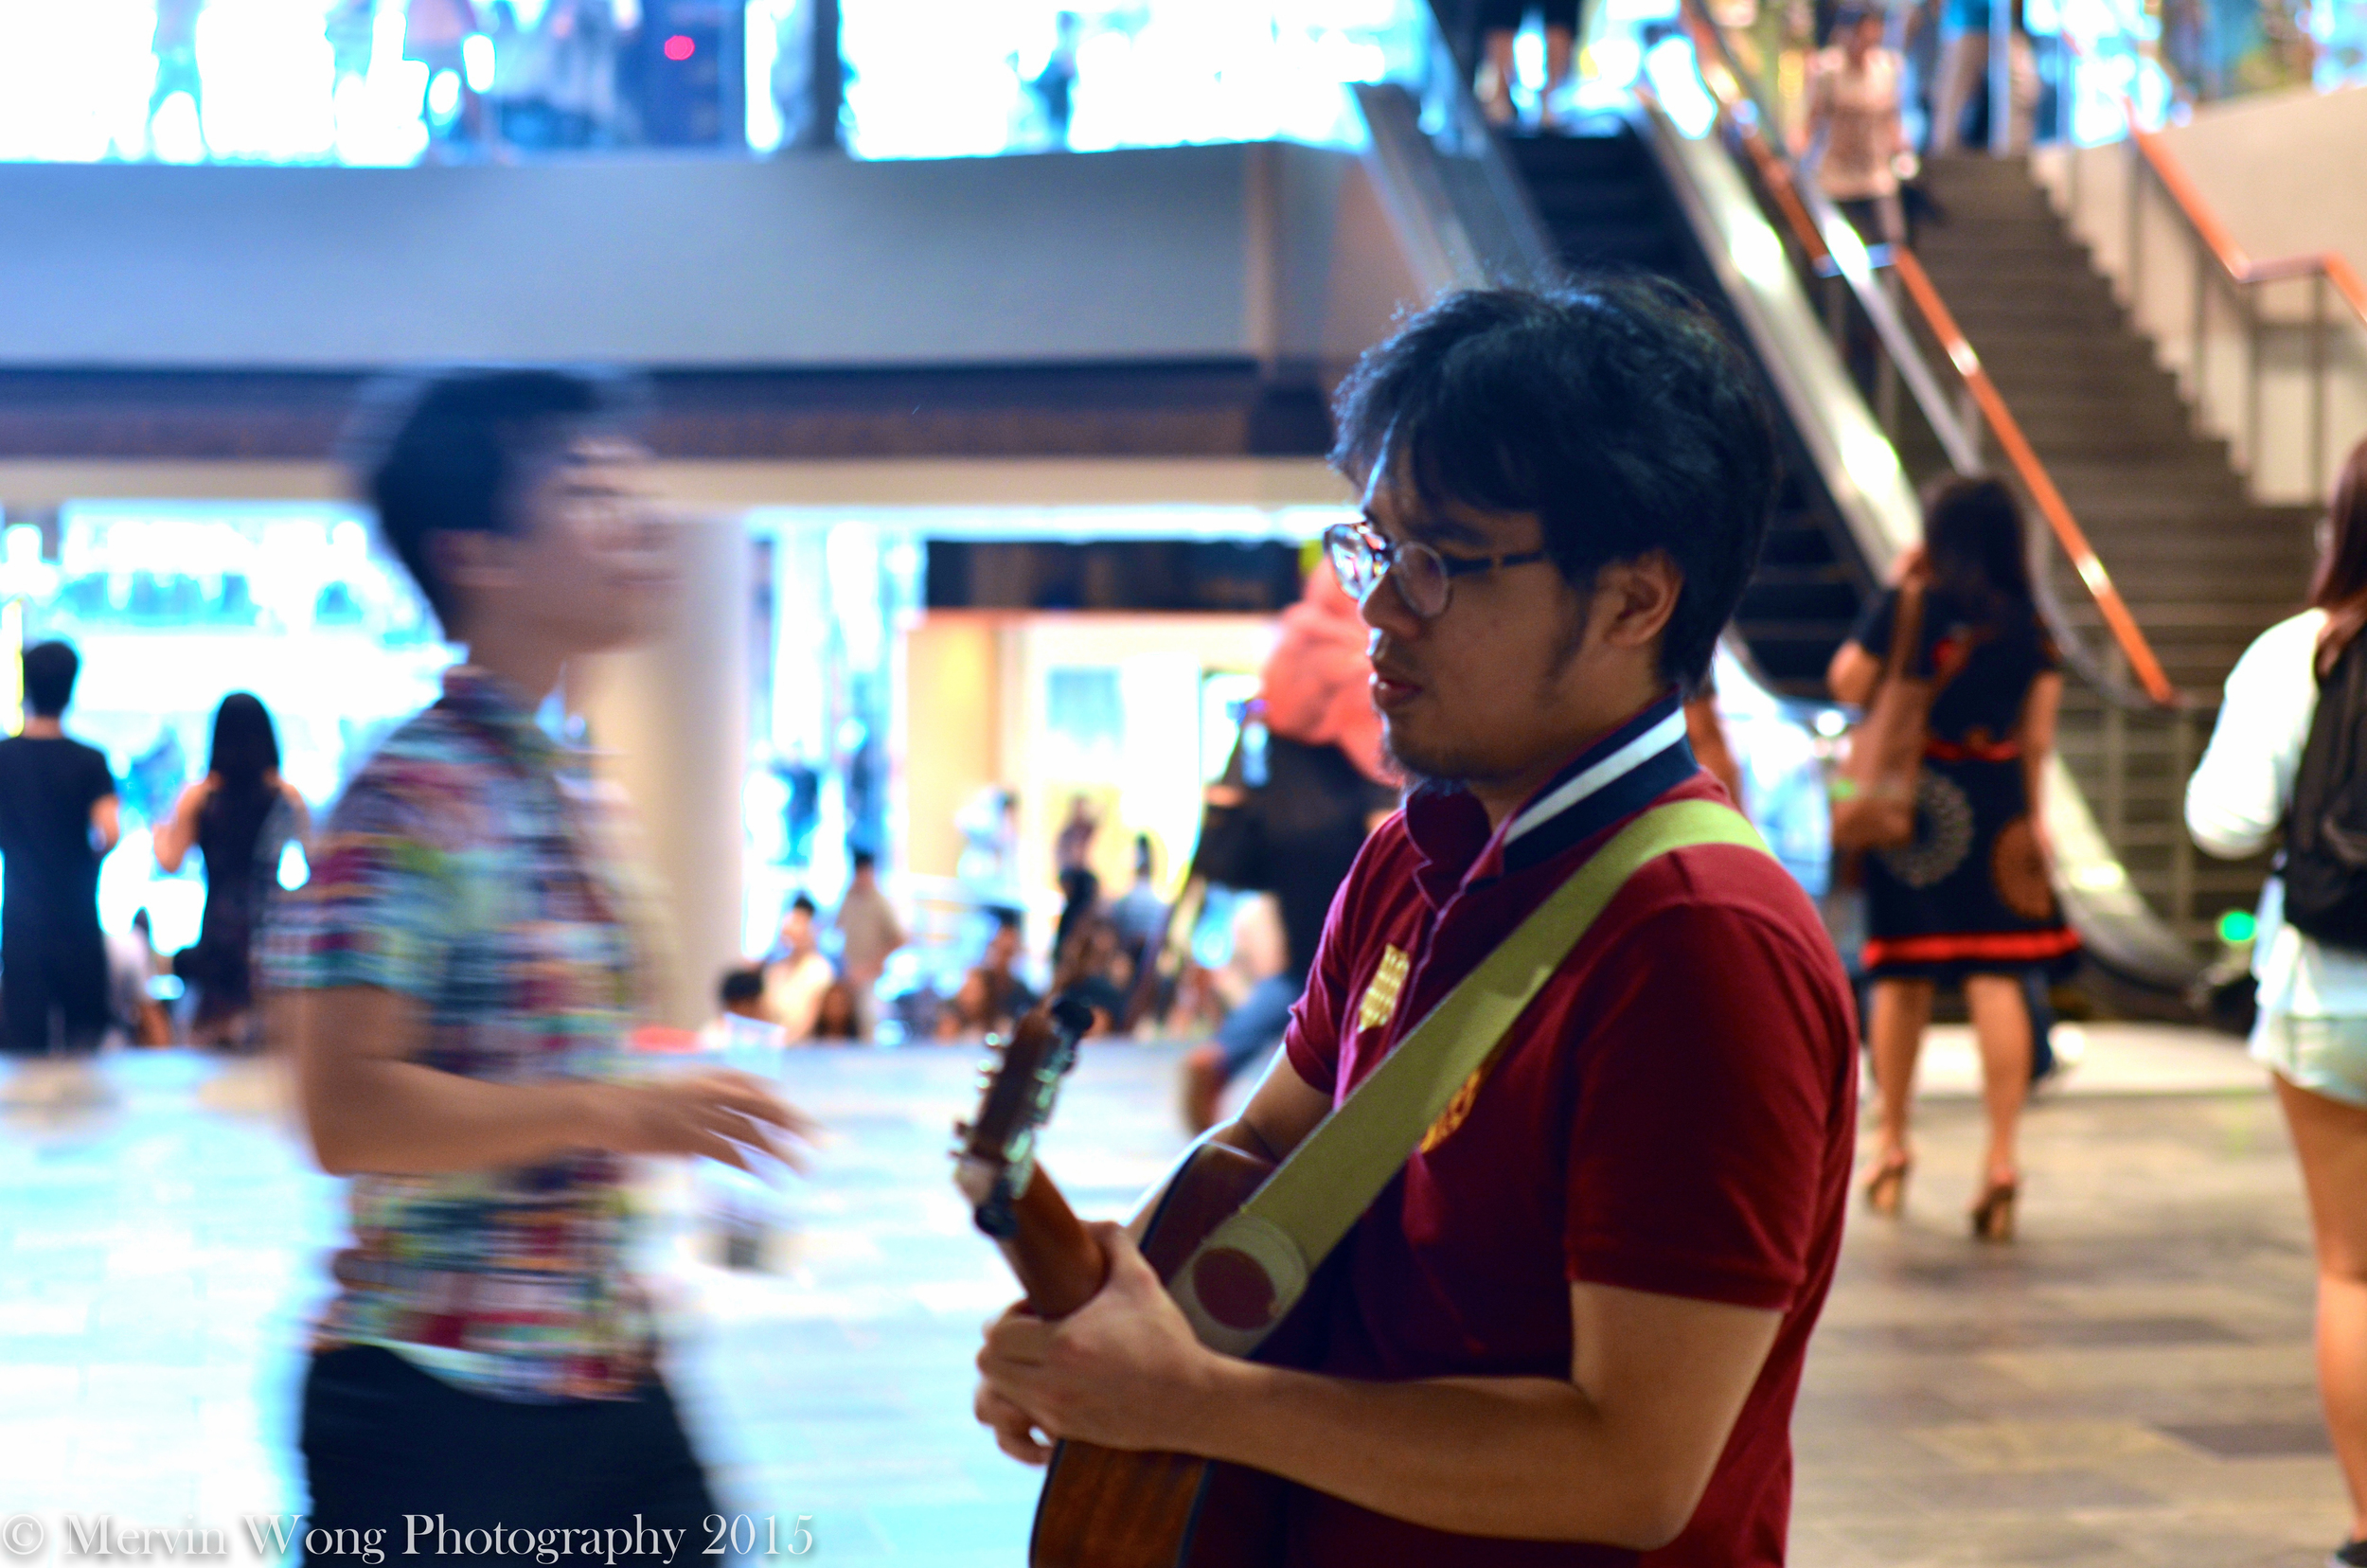 Mervin Wong Photography 2015 (2 of 52).jpg